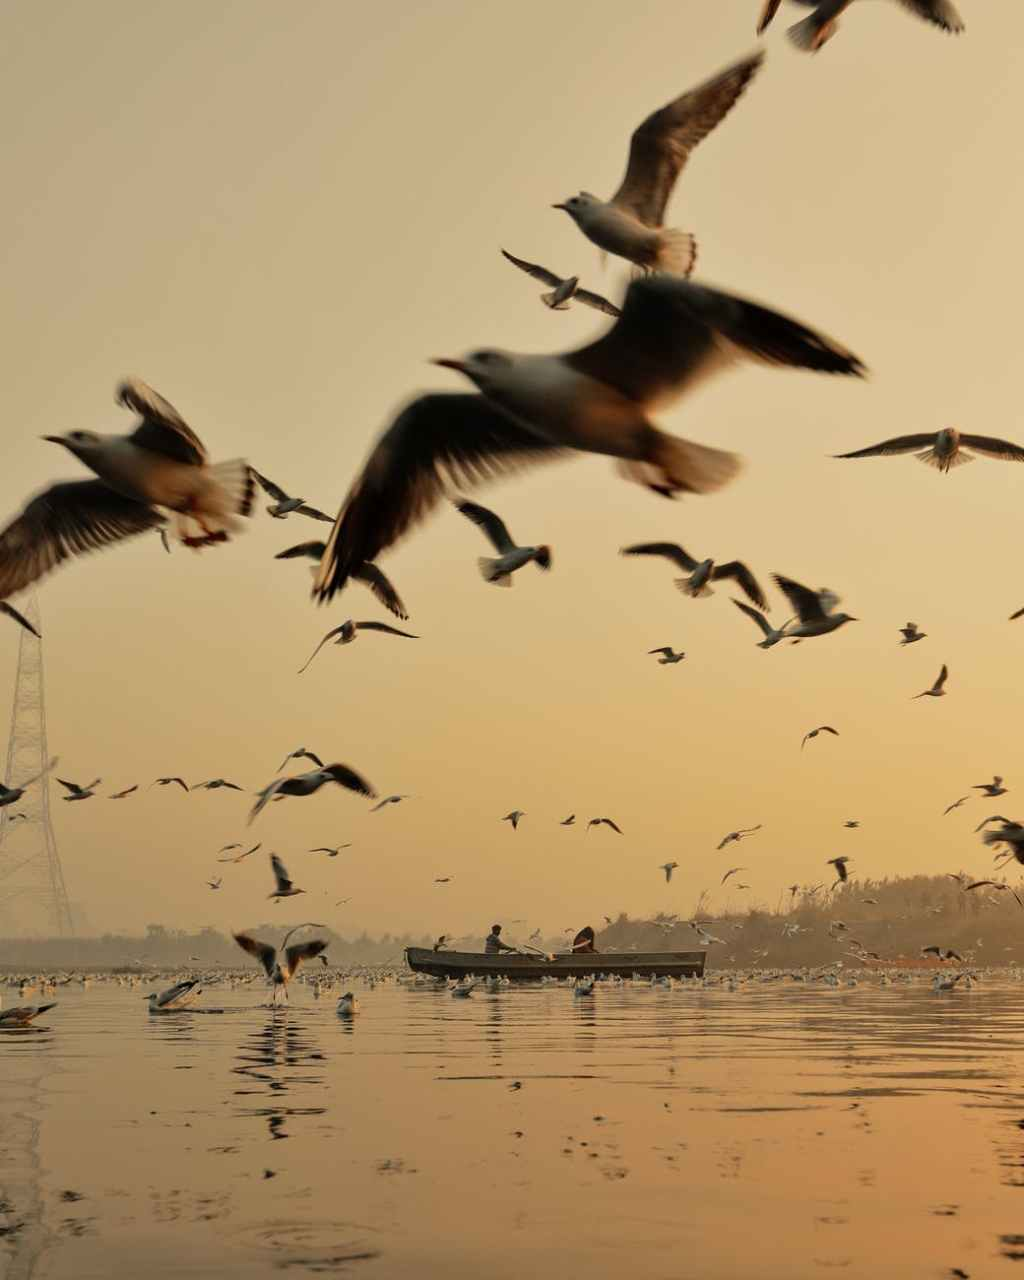 birds flying over sea with boat